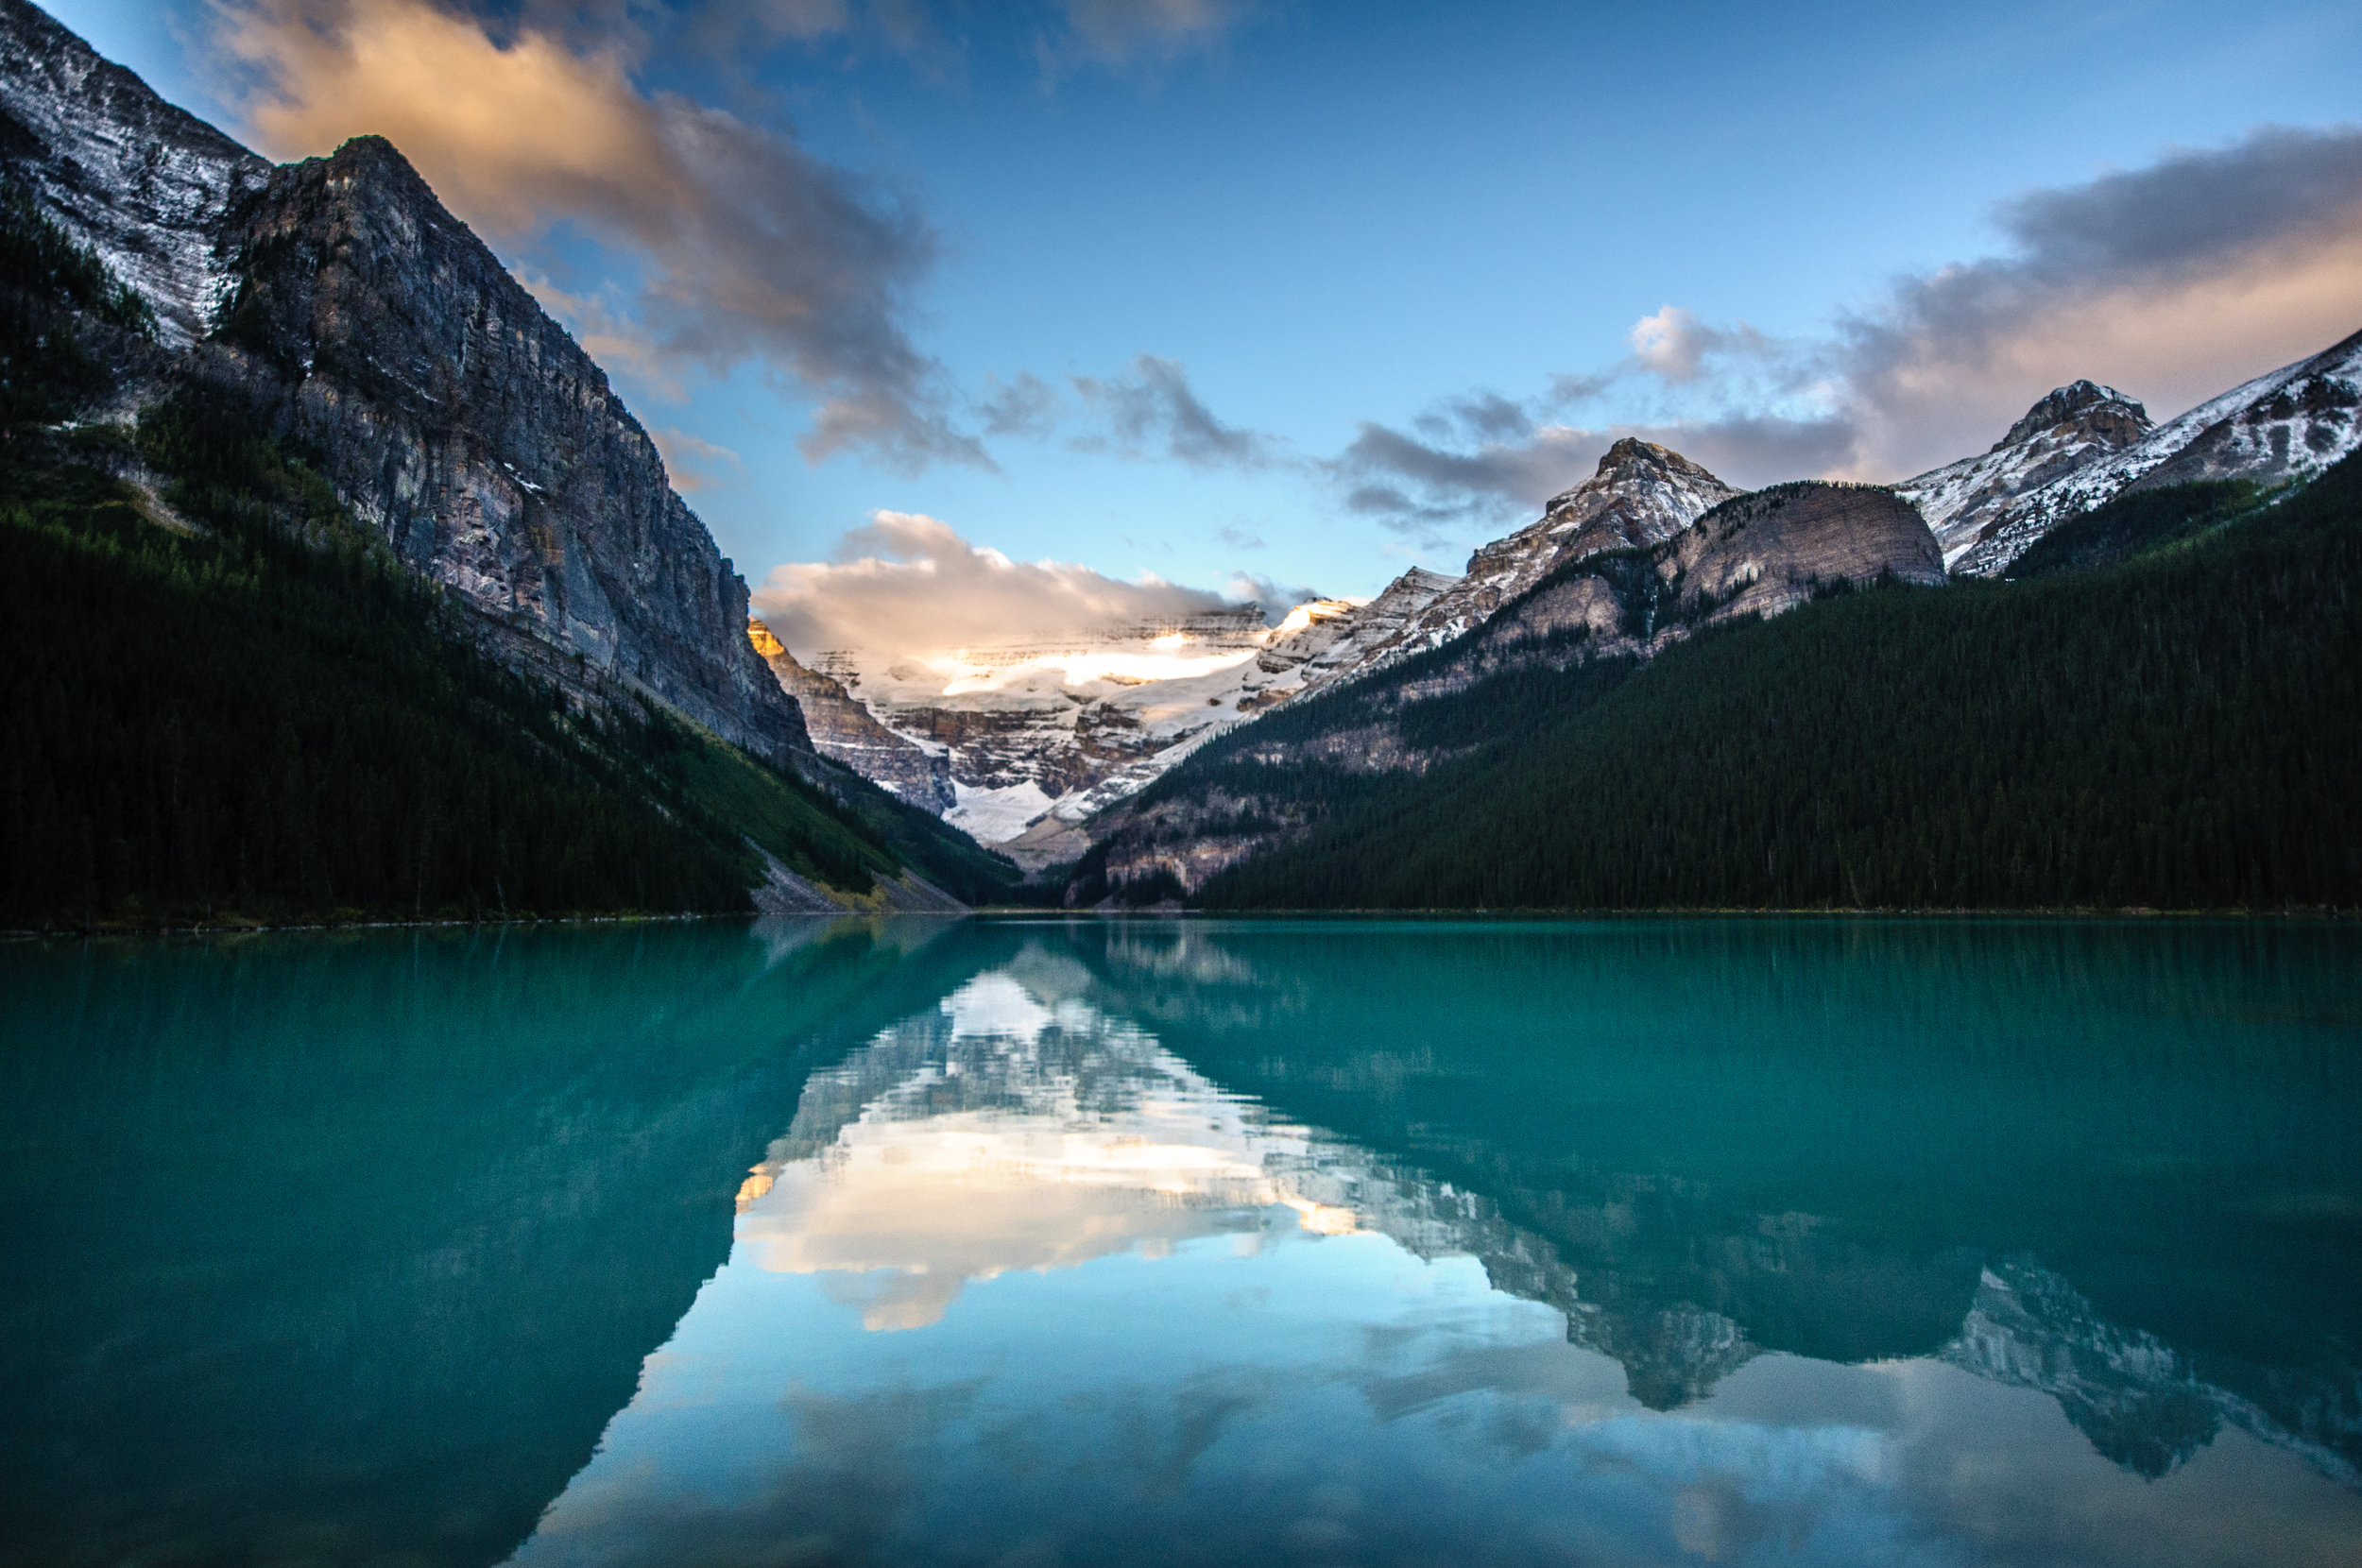 An image from Lake Louise in Banff National Park Canada. I just recently went back and found this gem. I decided to put together a project page with alums and this image is in my first one of Canada.  View full album